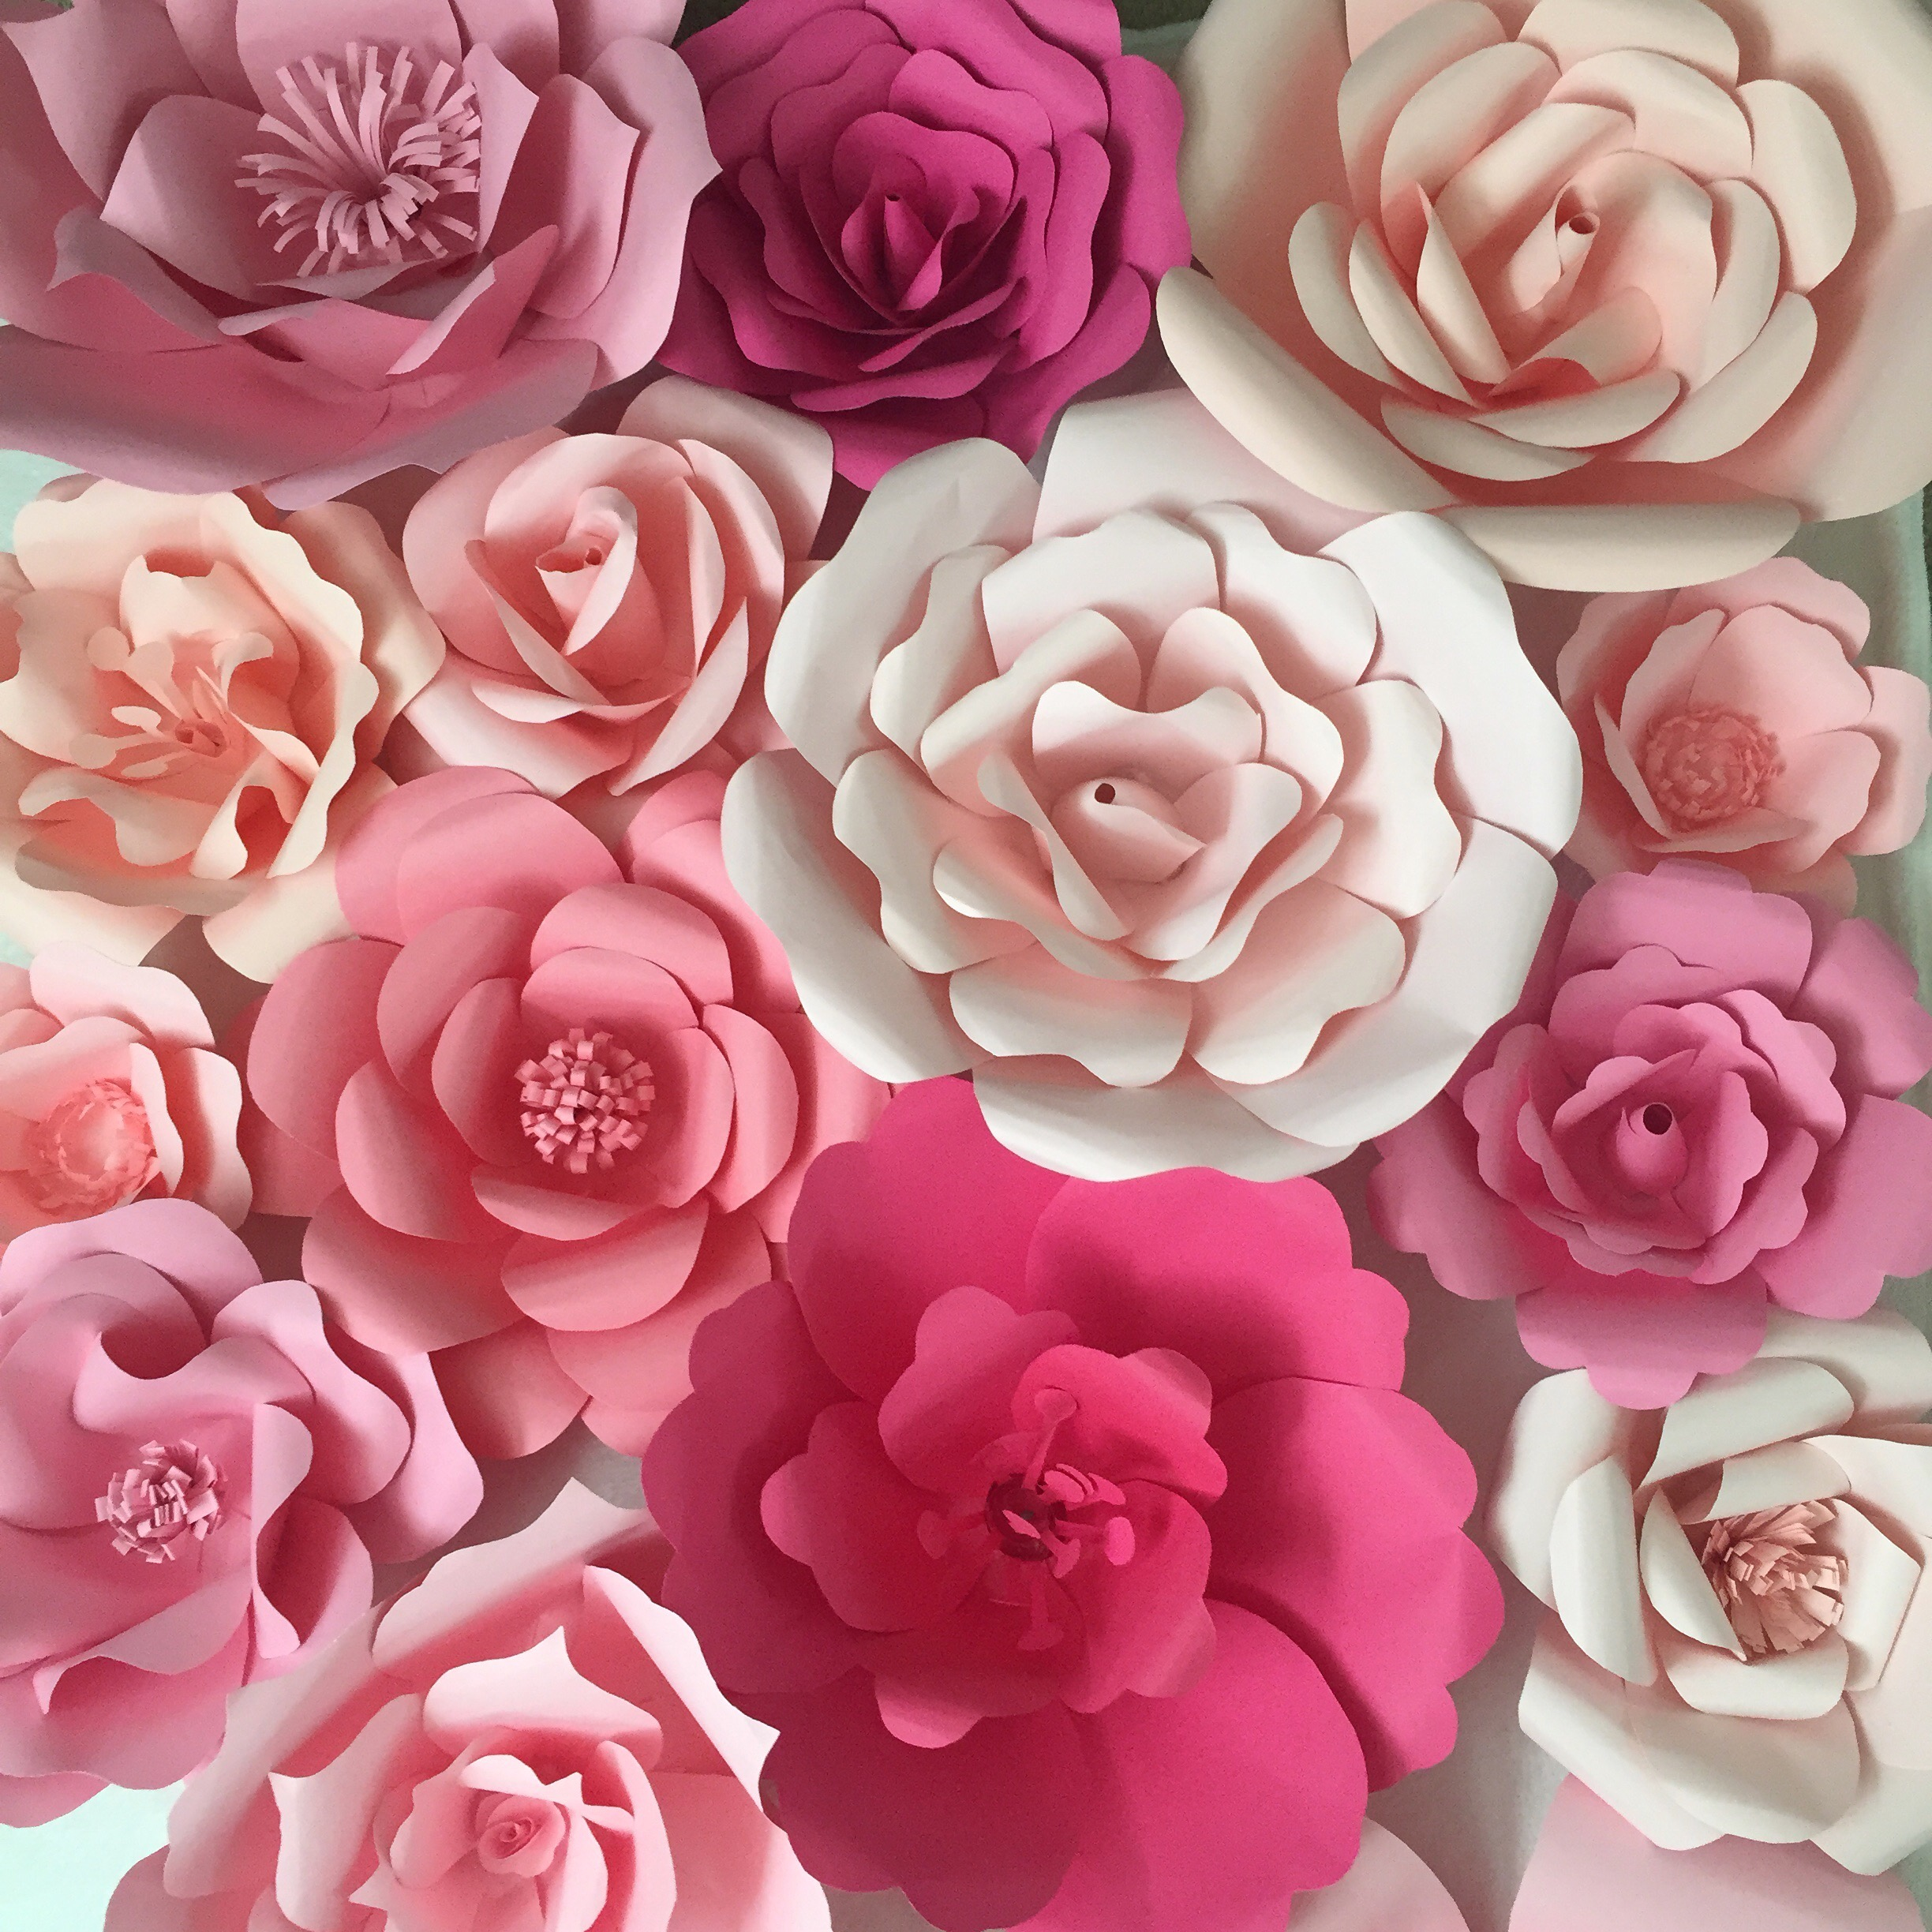 Diy giant paper flower yelomdiffusion paper flower backdrop ash and crafts mightylinksfo